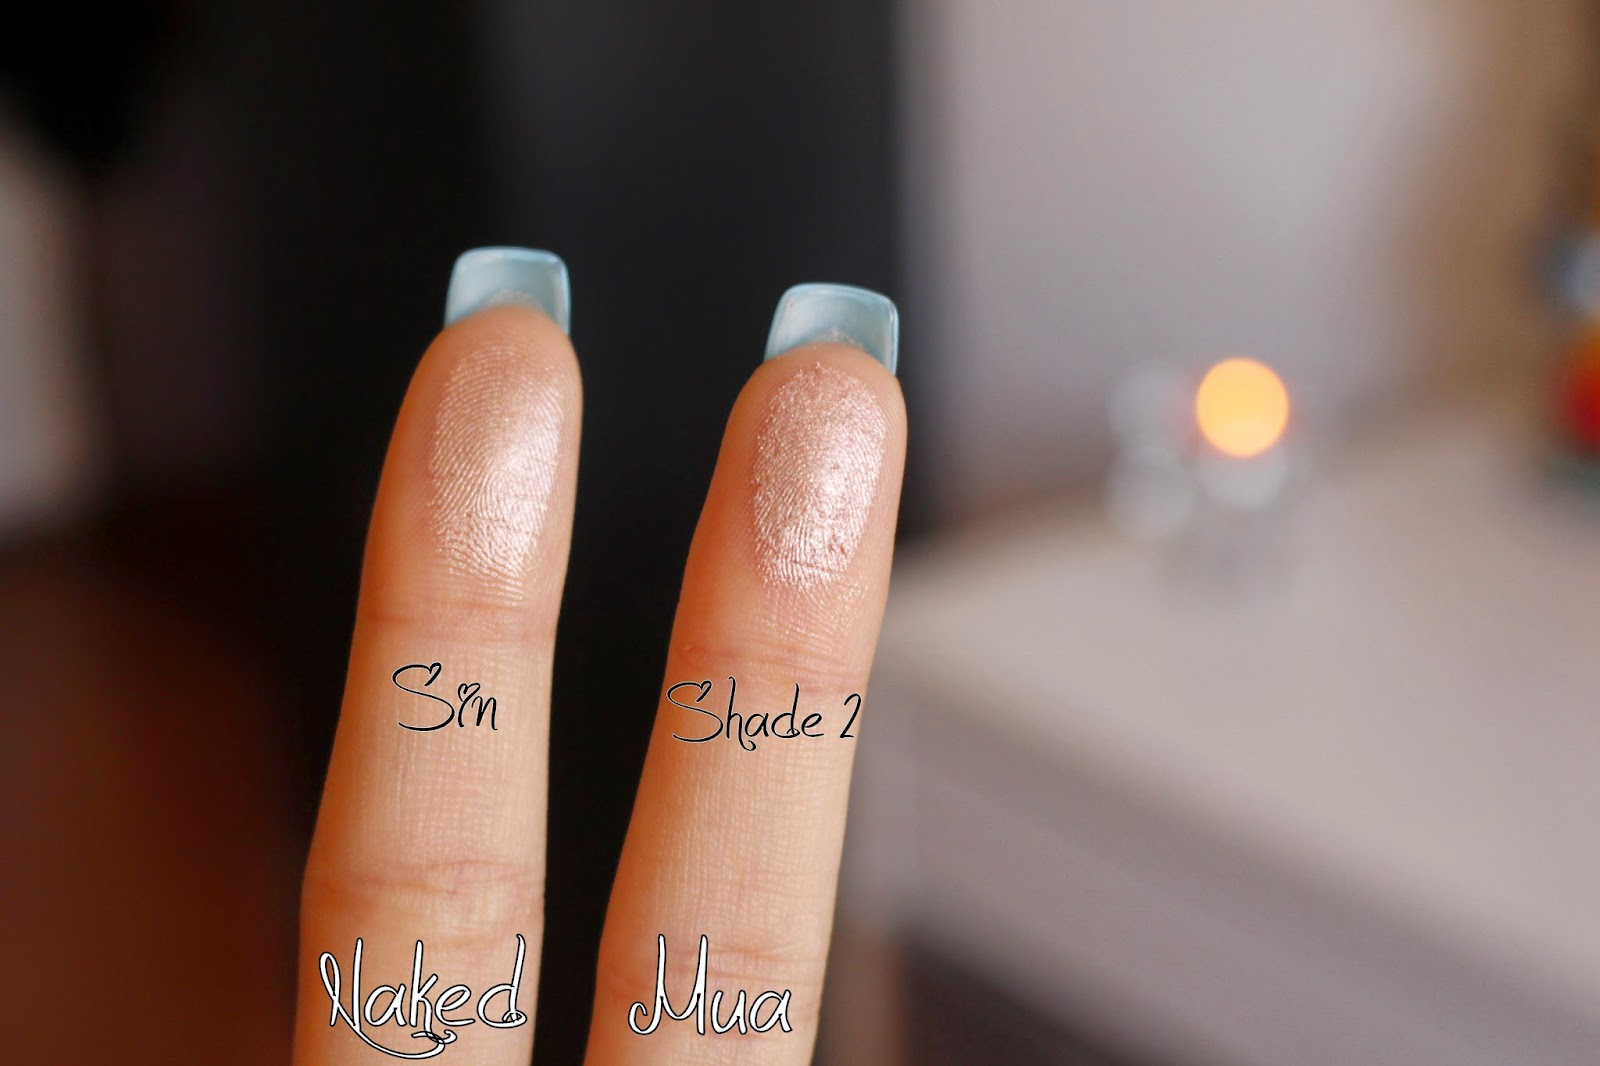 Naked Mua sin shade 2